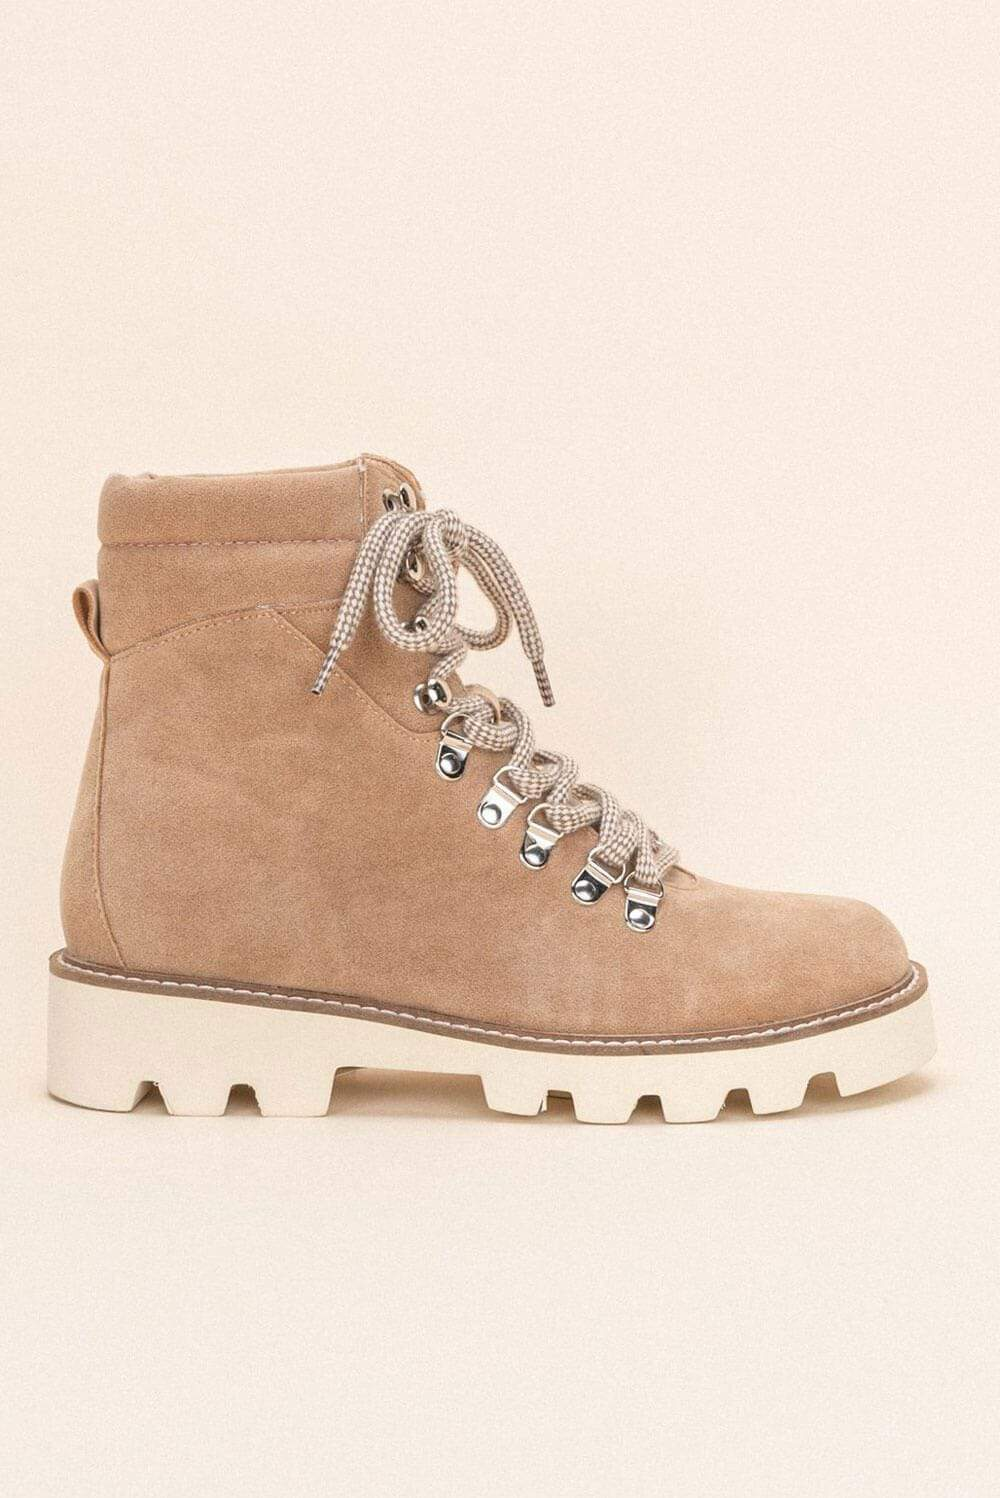 Arlene High-Top Lace Up Boot khaki side MILK MONEY